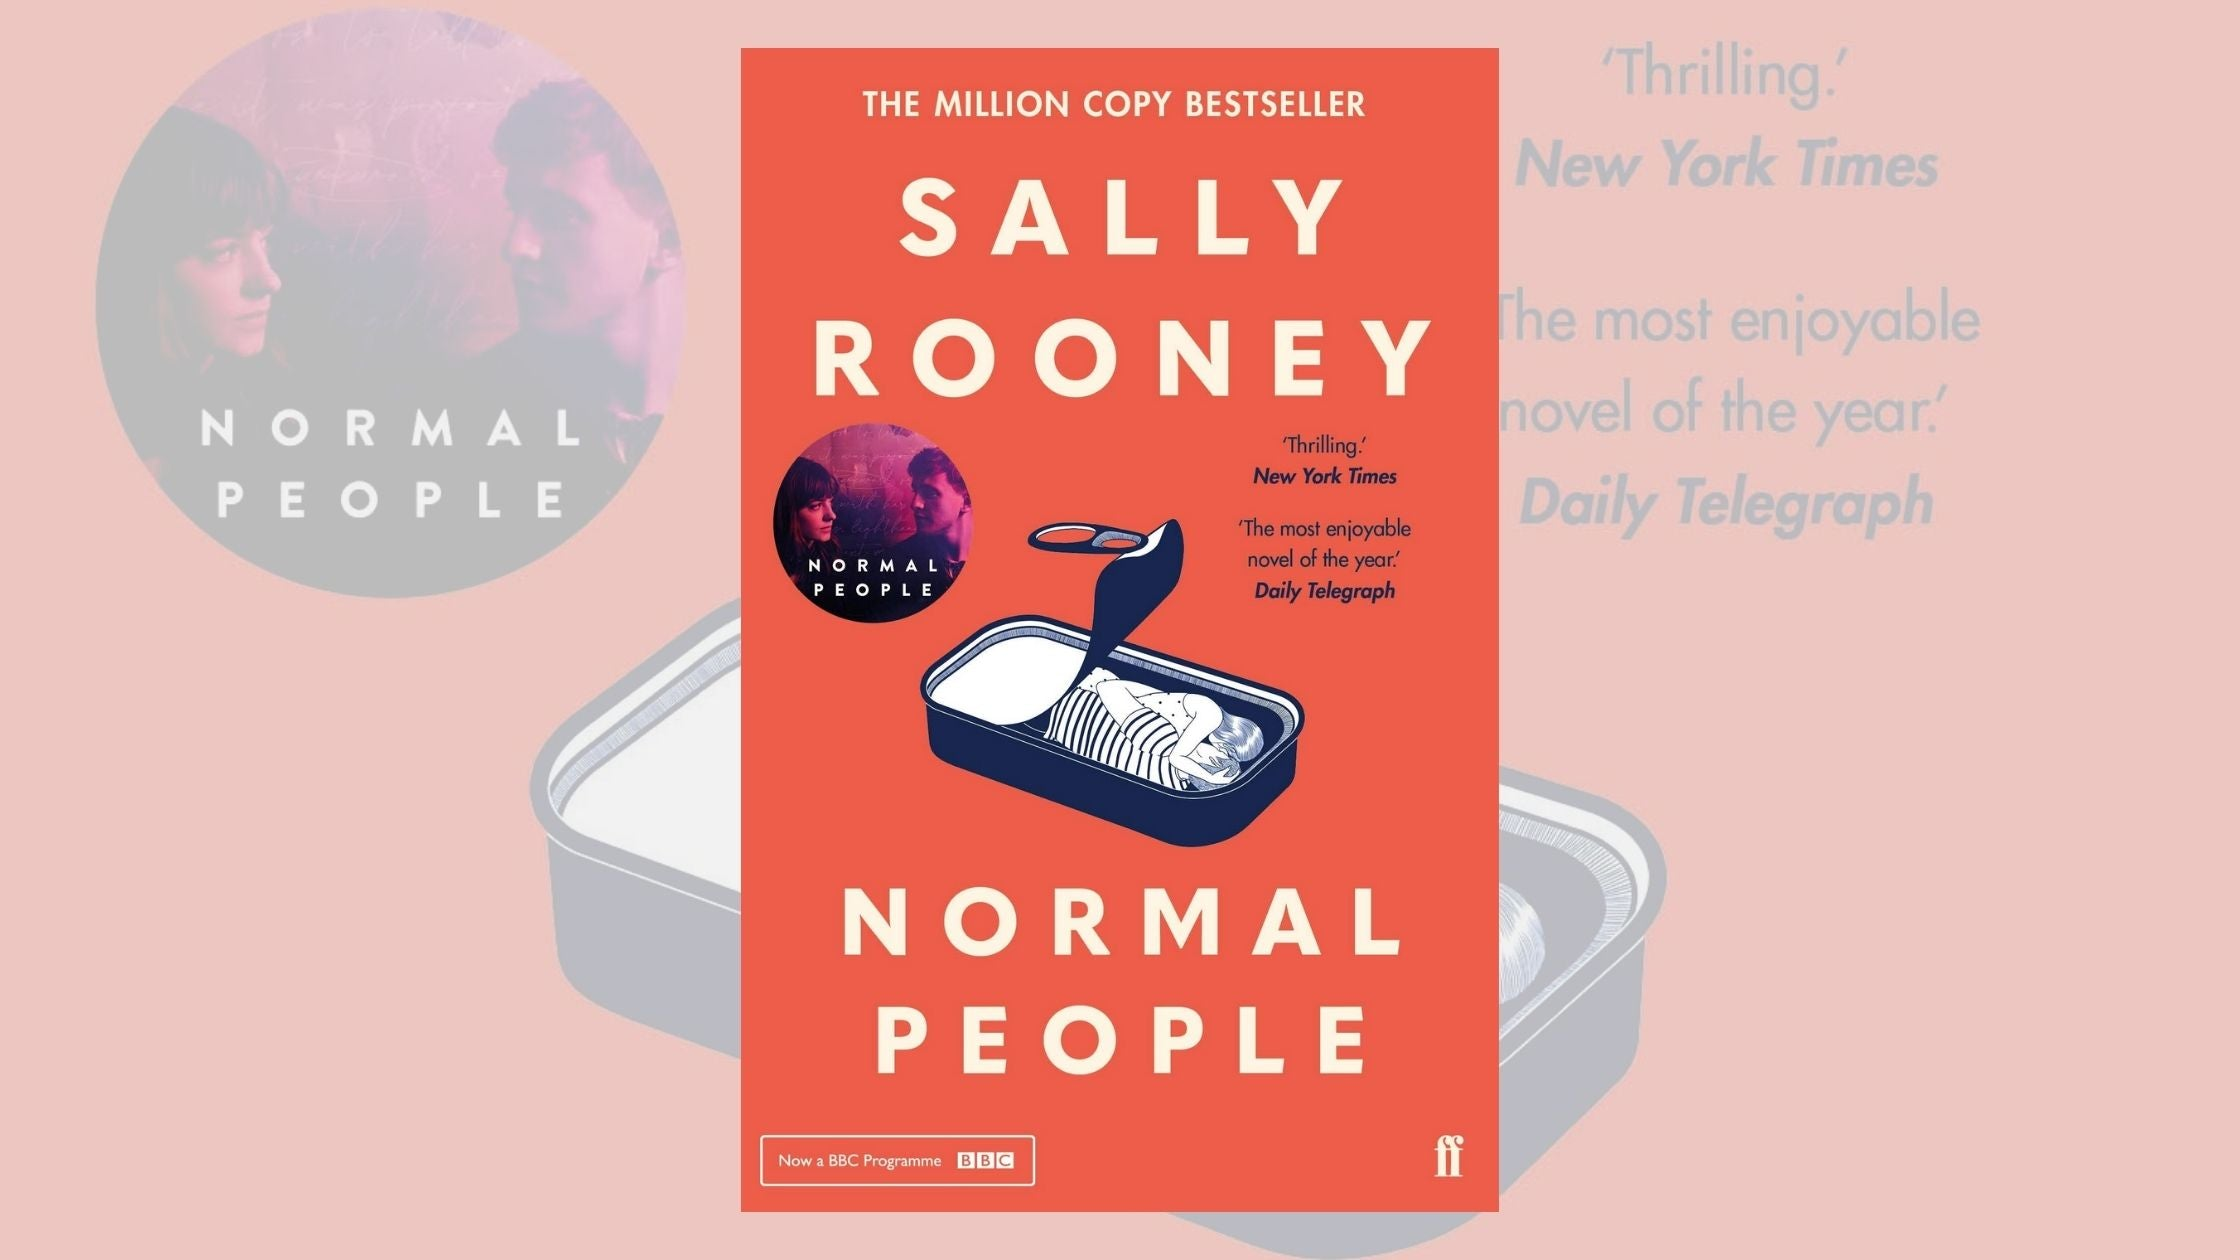 Books That Give You Book Recommendations